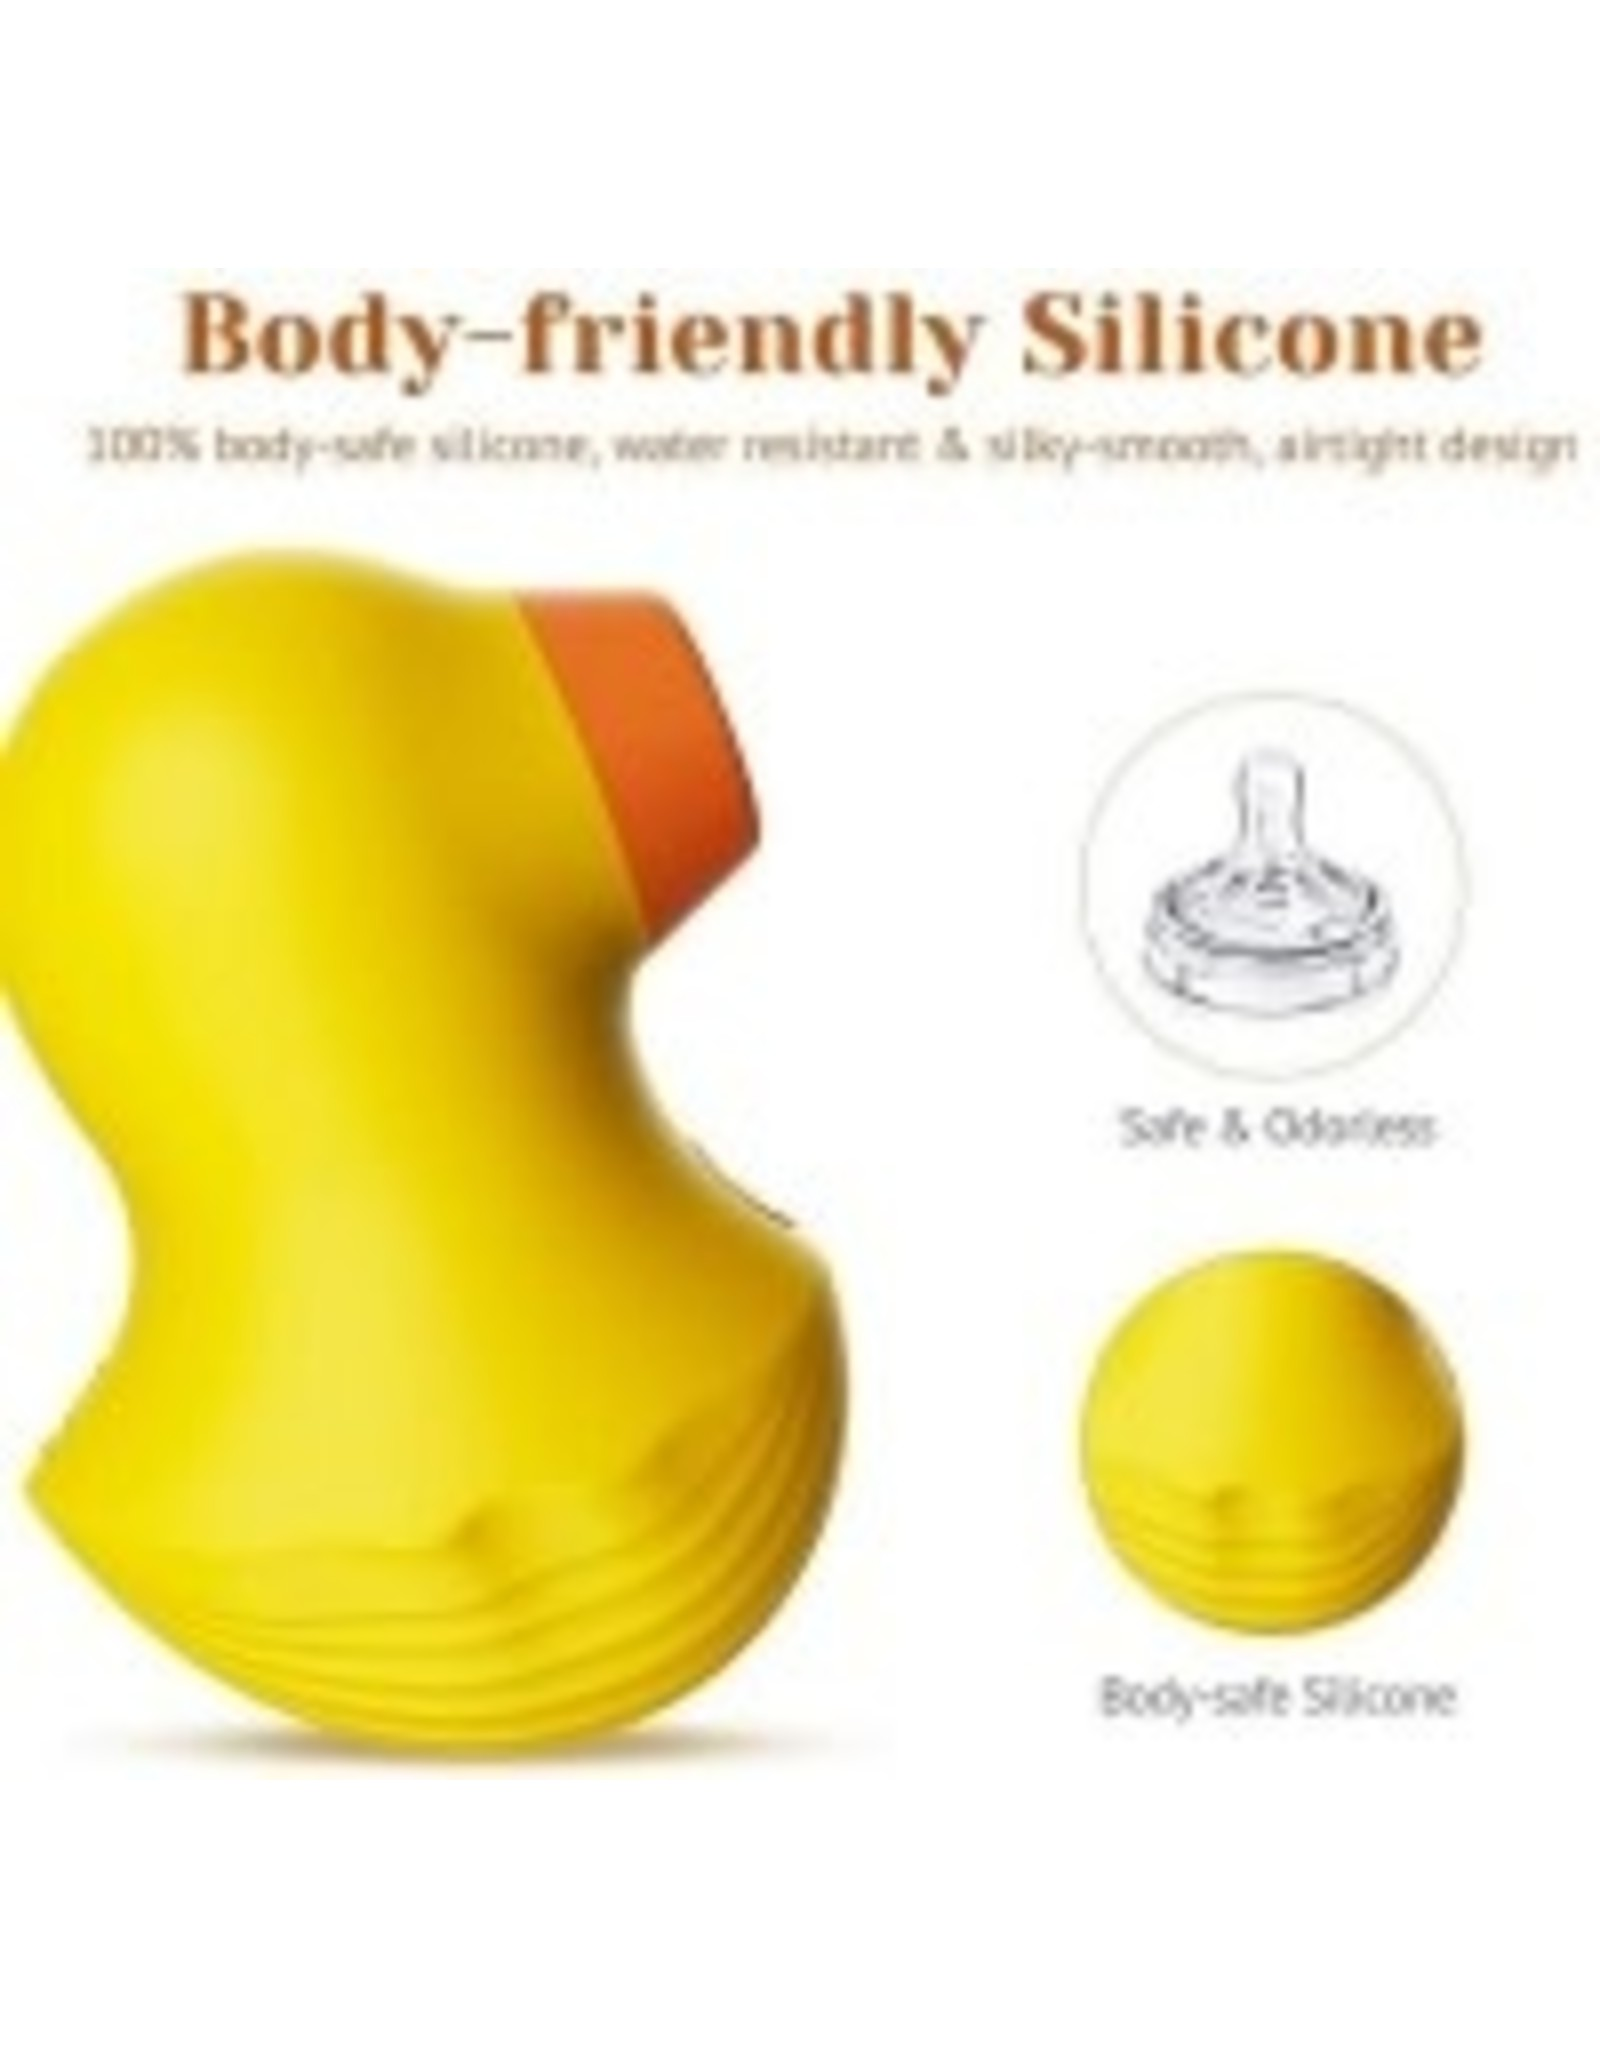 Tracy's Dog Tracy's Dog - Mr Duckie Clitoral Sucking Vibrator